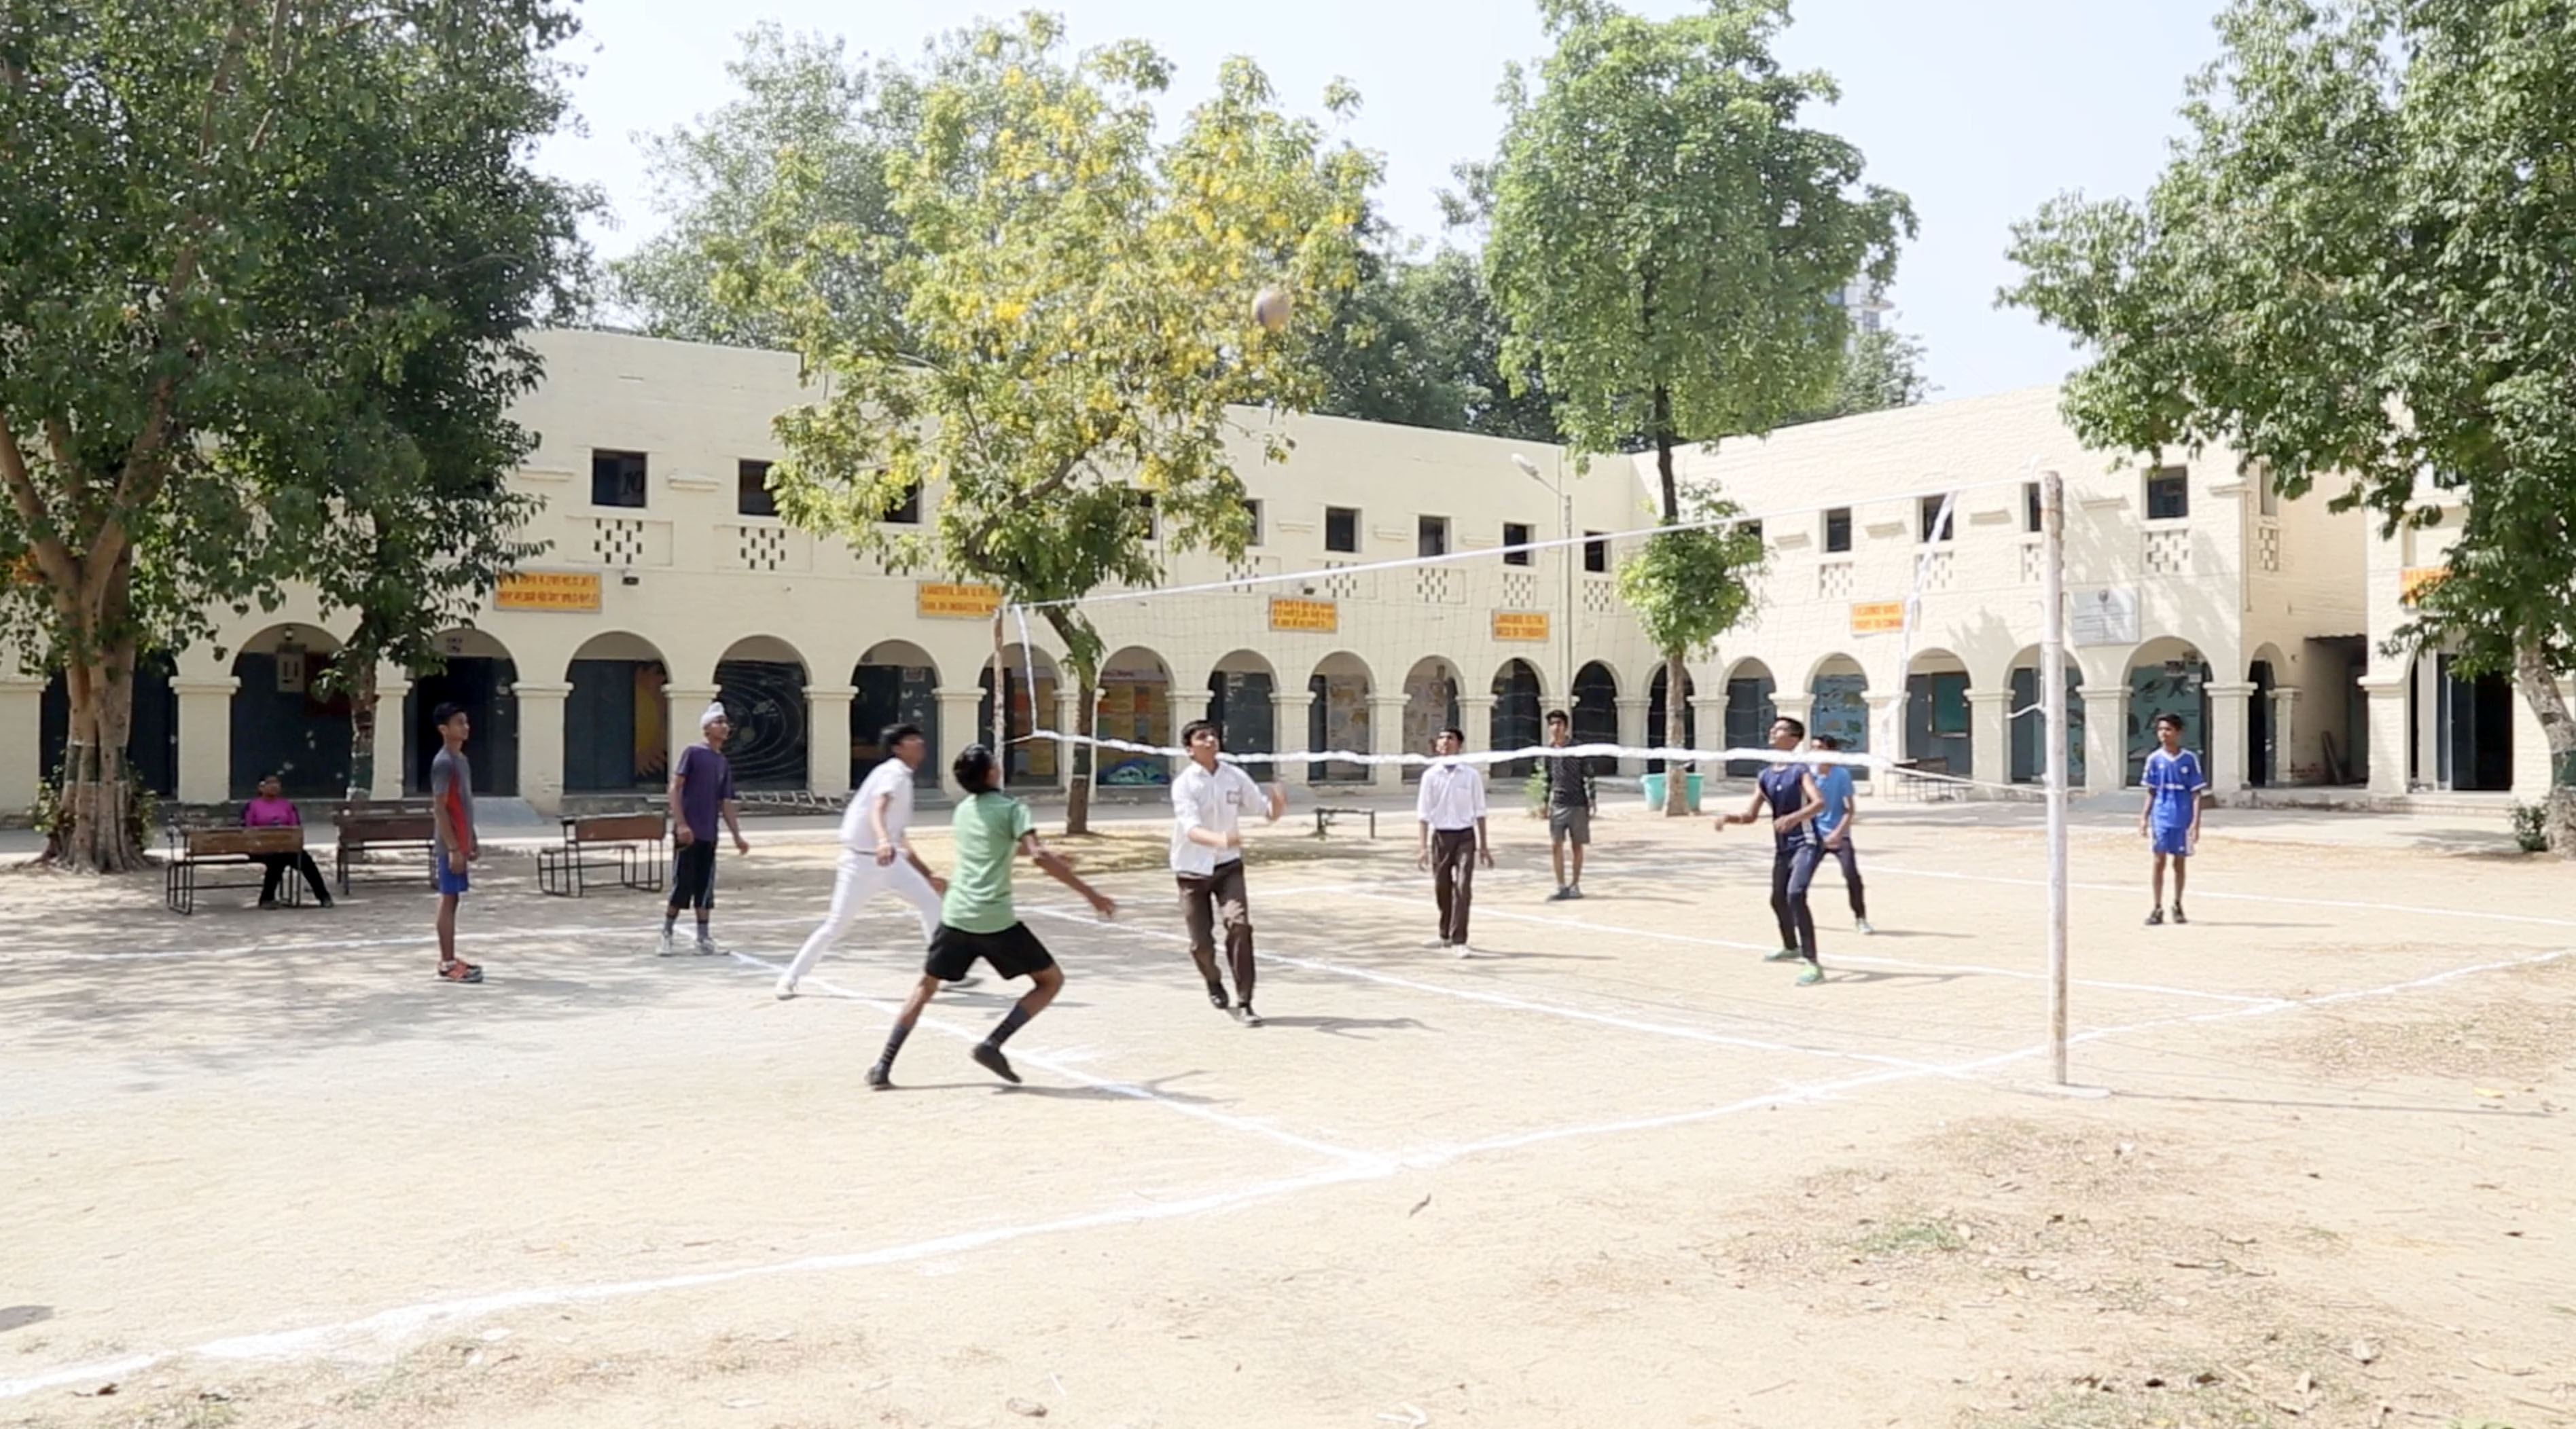 One of the schools The Wire visited. Credit: Ketan Krishna